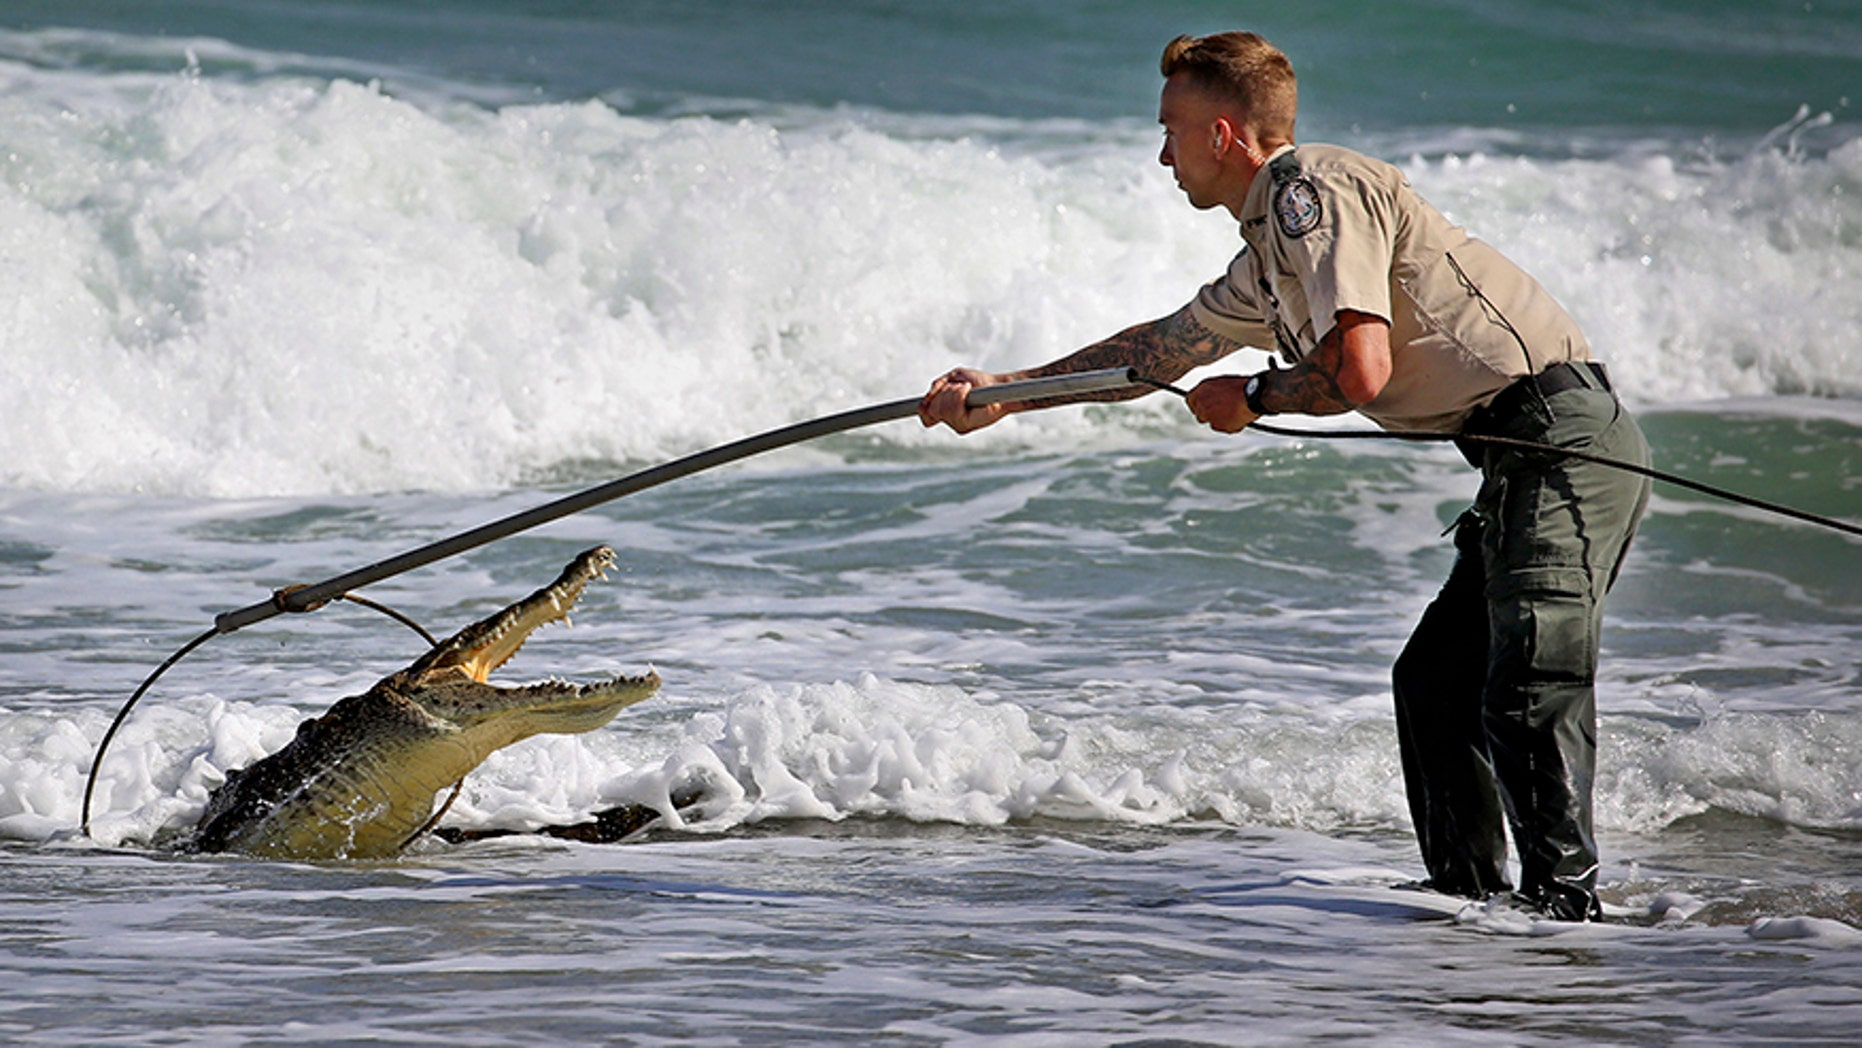 Nov. 20, 2017: A Florida Fish and Wildlife Conservation Commission officer tries to capture a crocodile along Hollywood Beach near Johnson Street. After several attempts the crocodile was caught unharmed.